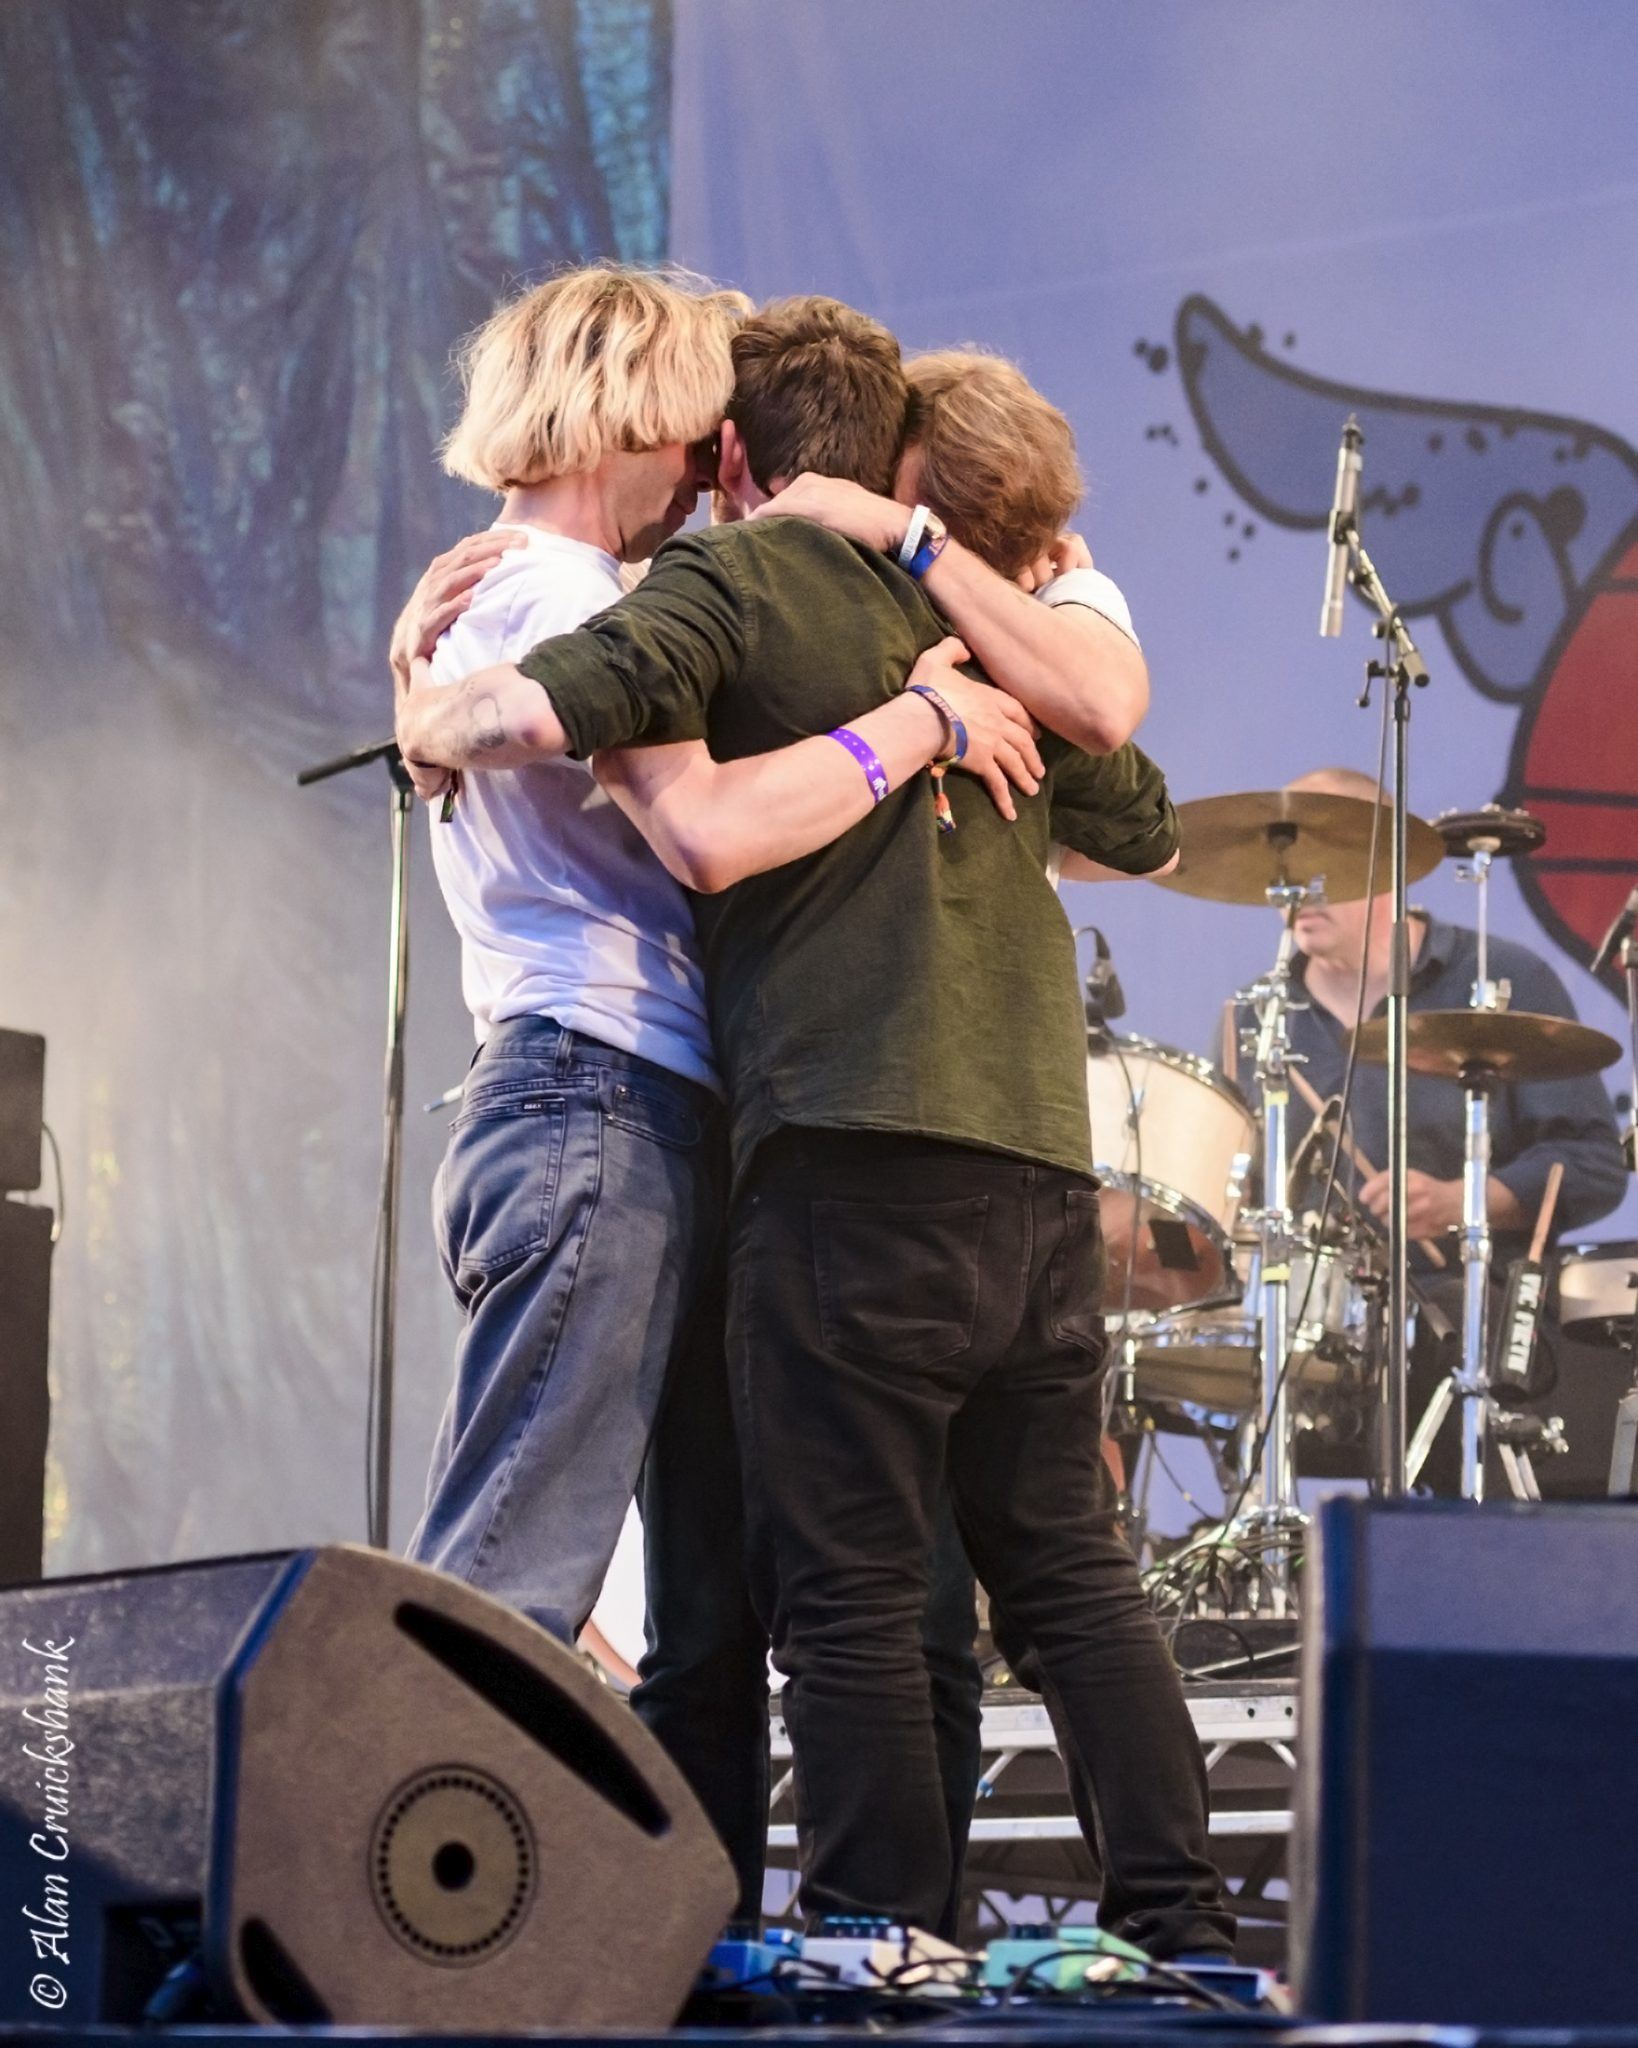 oJS1w - The Charlatans, Friday Belladrum 2018 - IMAGES